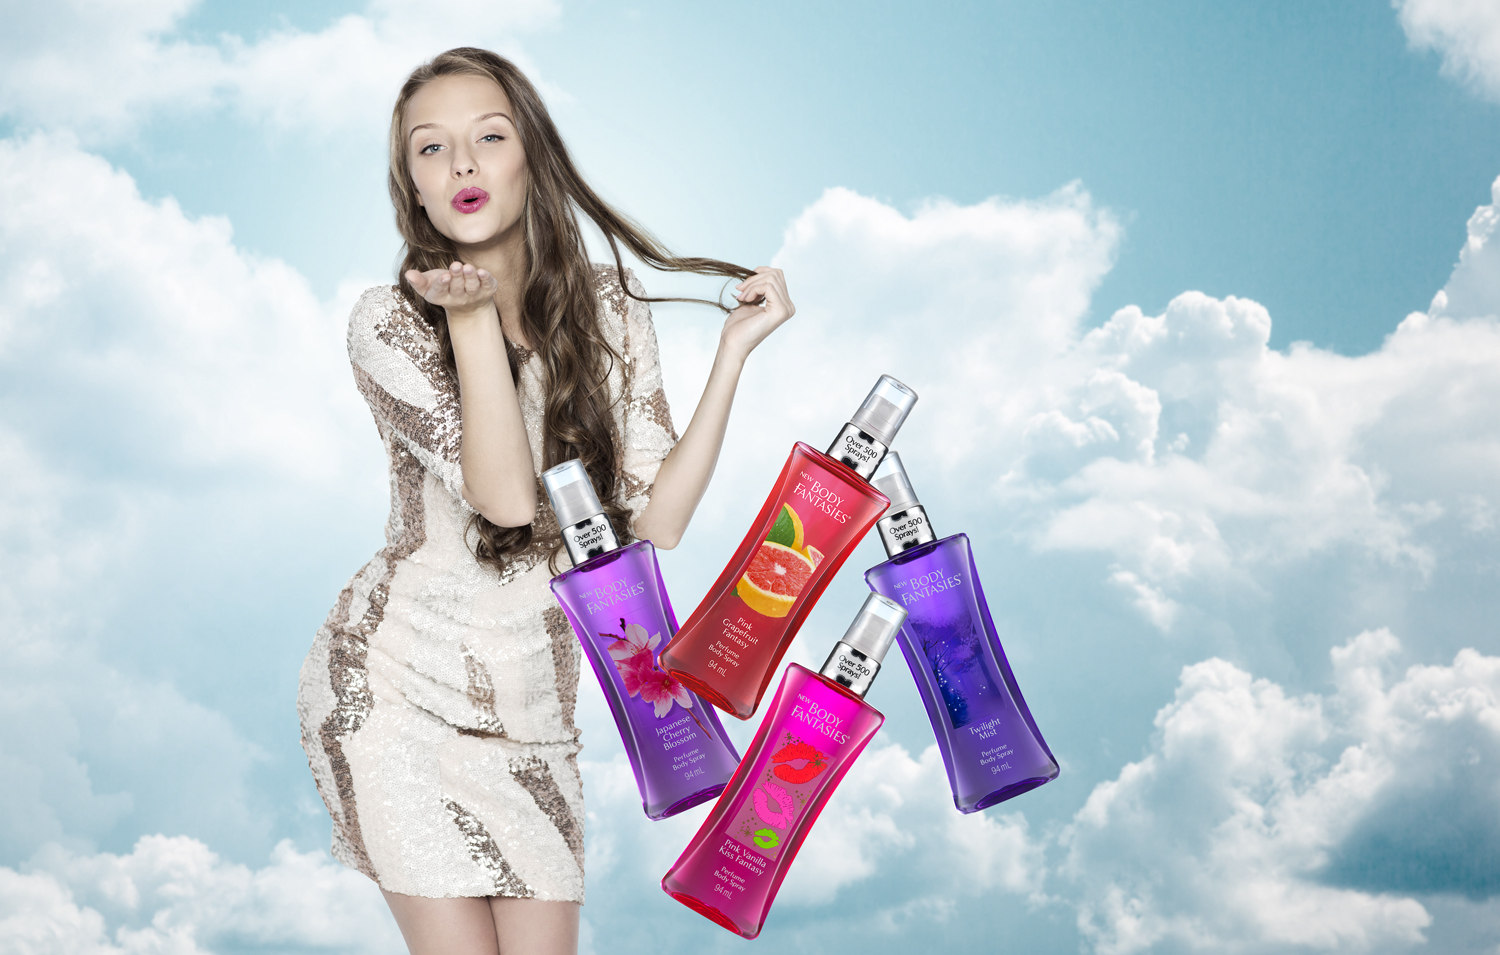 BODY FANTASIES - The USA's No.1 body perfume spray was launched in the UK in 2016 and VIViD managed a year-long launch project spanning web design, branding, PR, social and digital media.